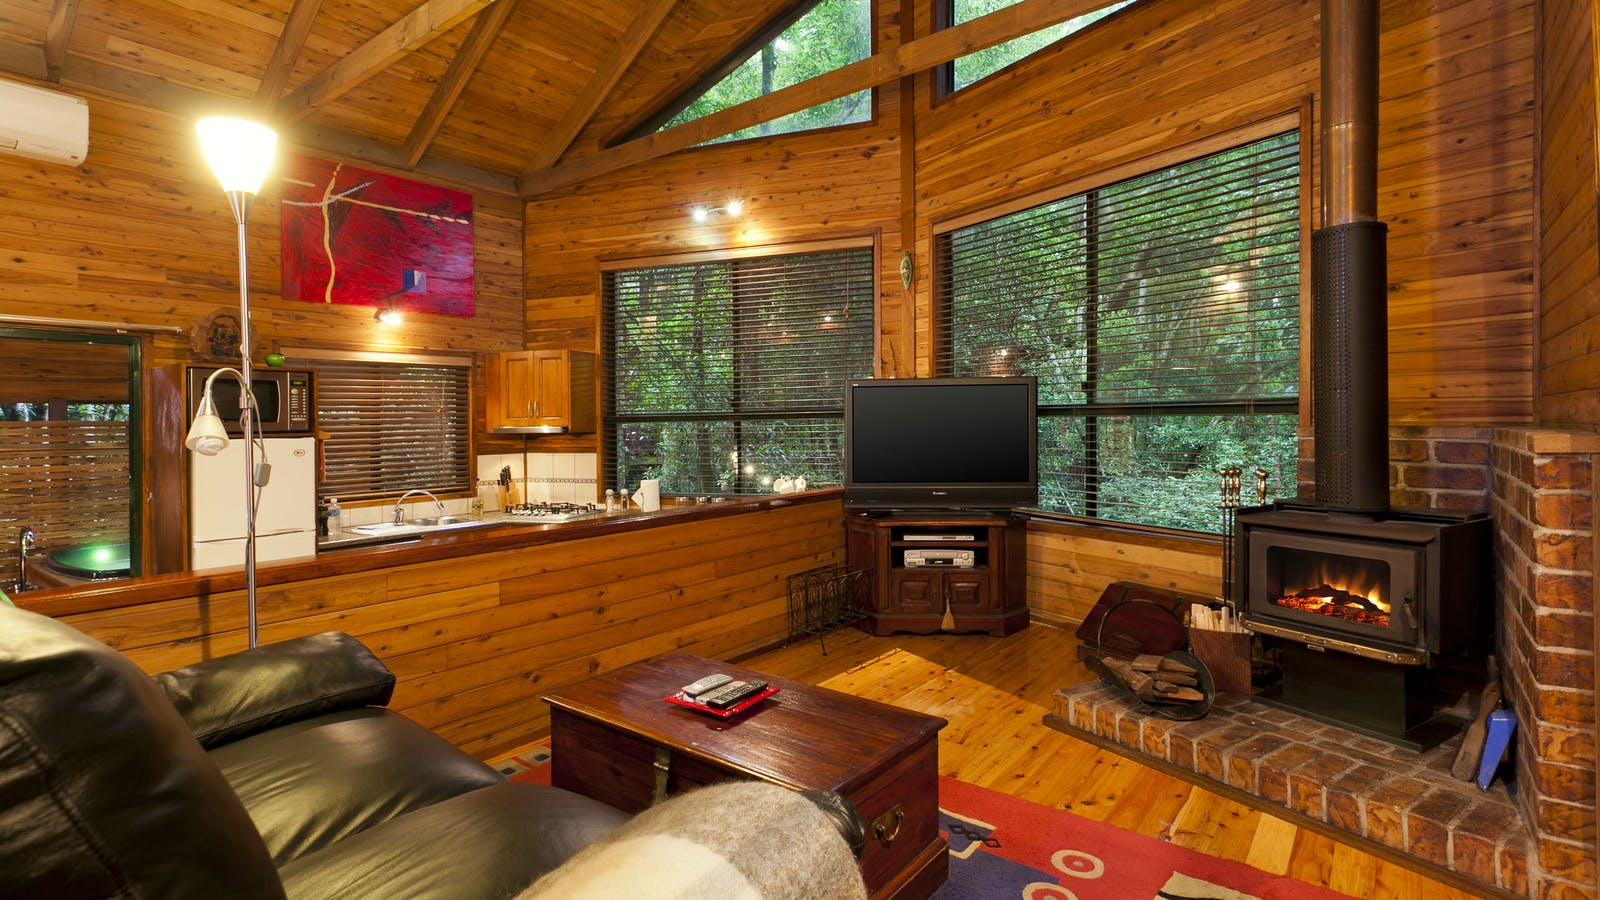 Mouses House - Rainforest Retreat, The